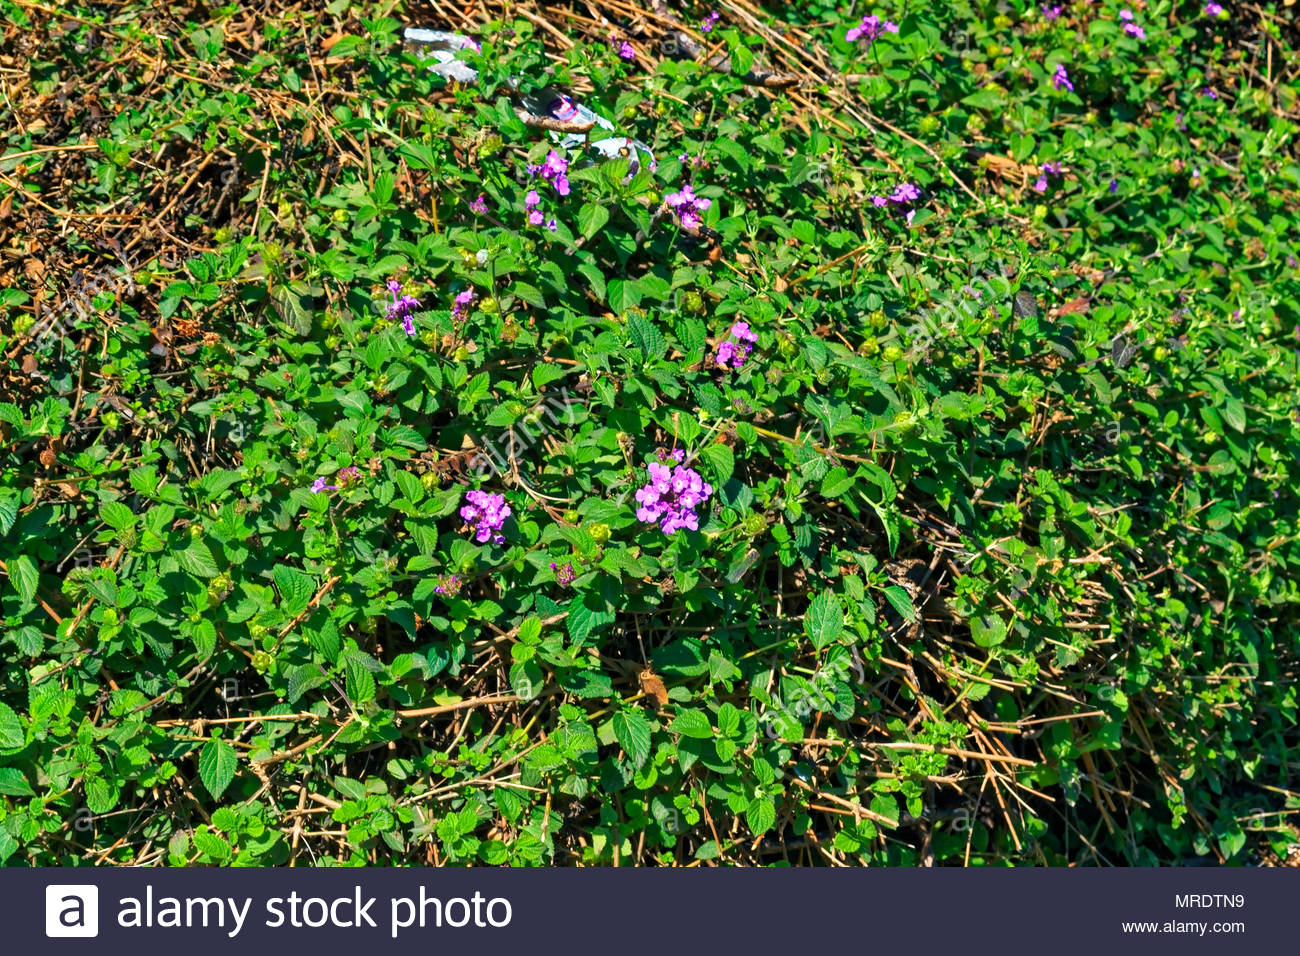 Green Bush With Purple Flowers And A Plastic Bag Shot In Sunlight